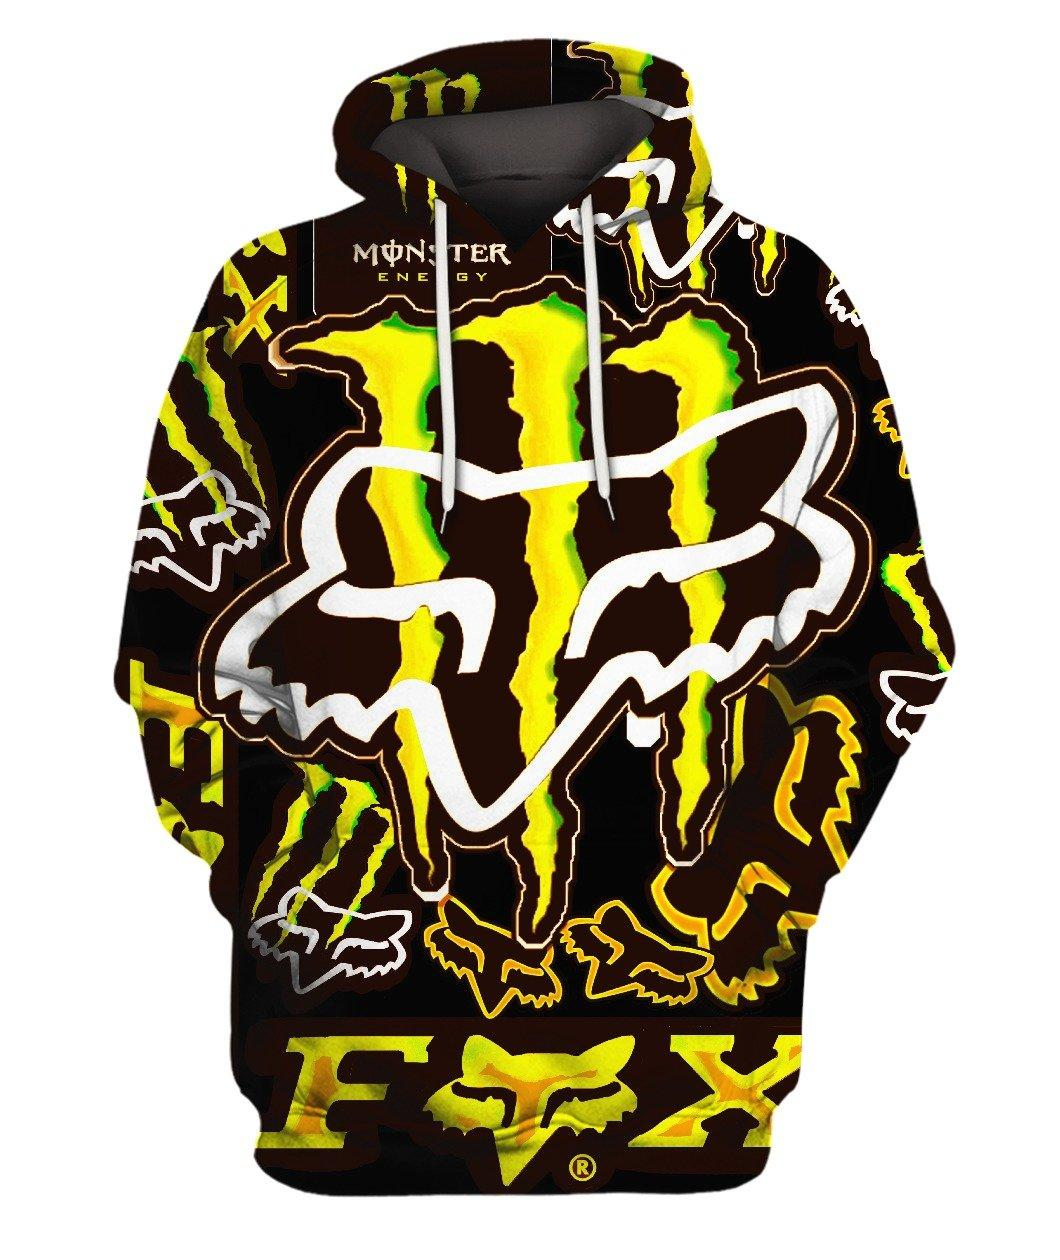 Fox Monster Energy Yellow 3d Full Print 3d Graphic Printed Tshirt Hoodie Up To 5xl